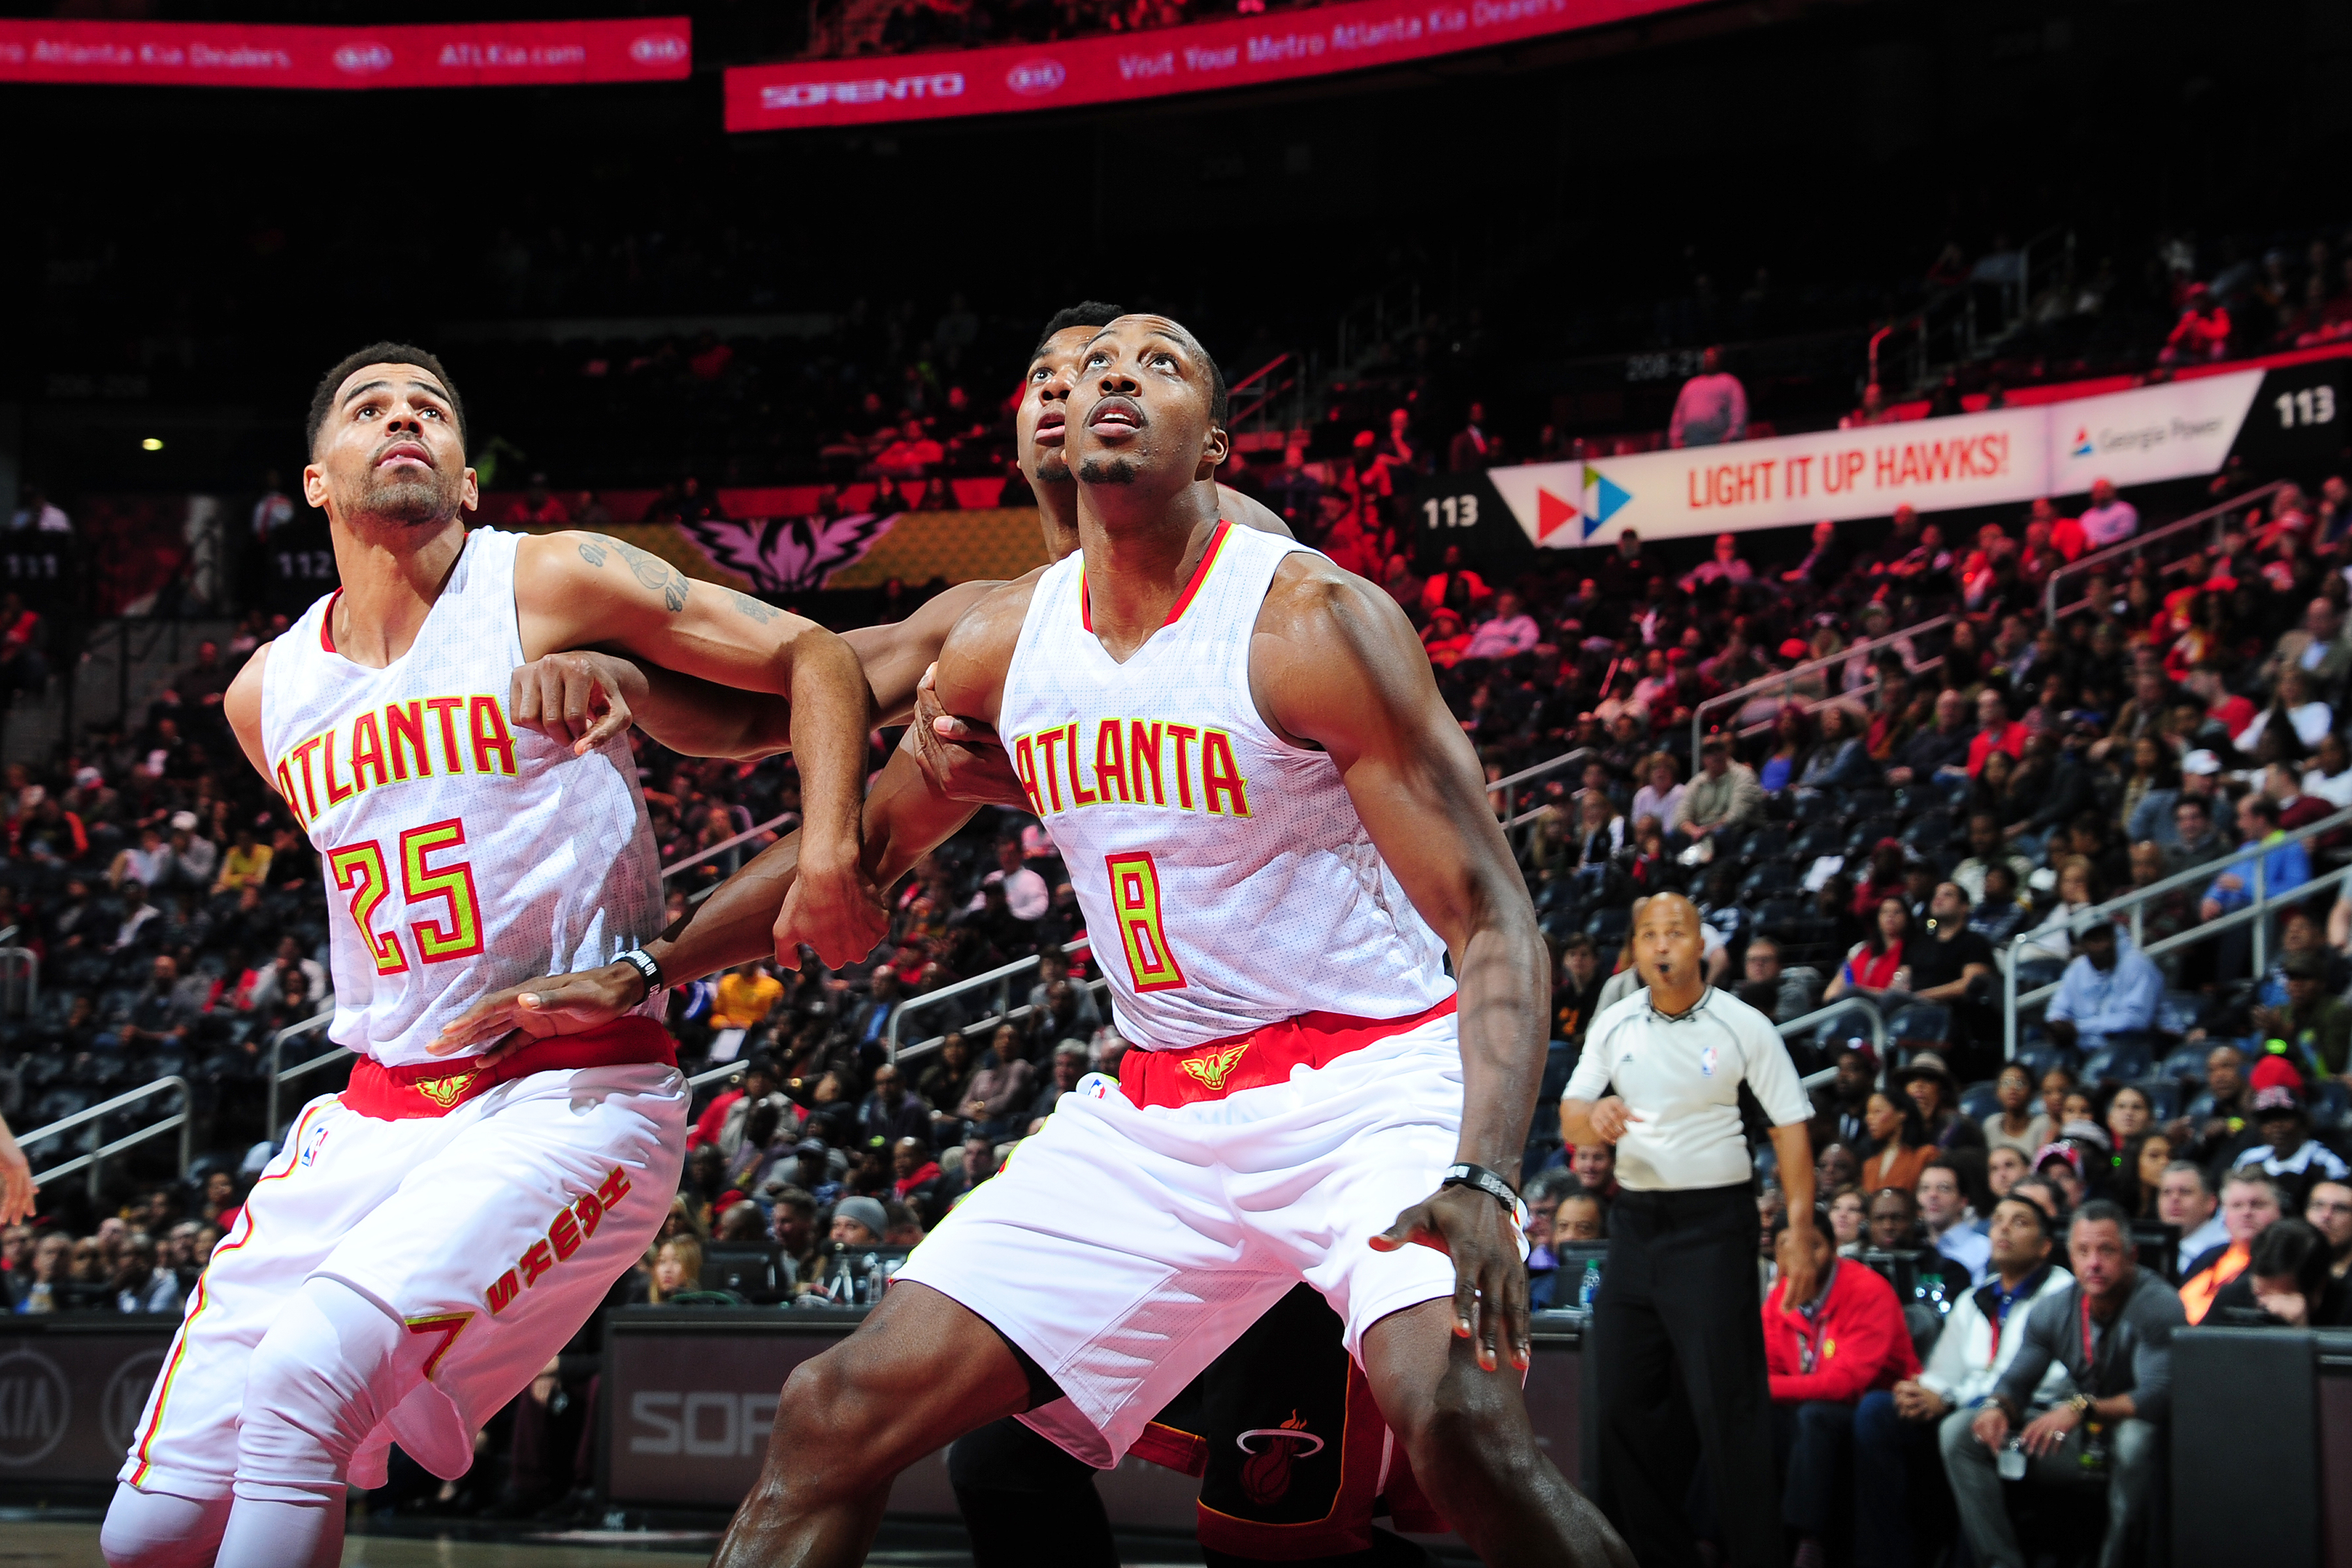 ATLANTA, GA - DECEMBER 7: Dwight Howard #8 and Thabo Sefolosha #25 of the Atlanta Hawks boxes out against the Miami Heat on December 7, 2016 at Philips Arena in Atlanta, Georgia.  NOTE TO USER: User expressly acknowledges and agrees that, by downloading and/or using this Photograph, user is consenting to the terms and conditions of the Getty Images License Agreement. Mandatory Copyright Notice: Copyright 2016 NBAE (Photo by Scott Cunningham/NBAE via Getty Images)